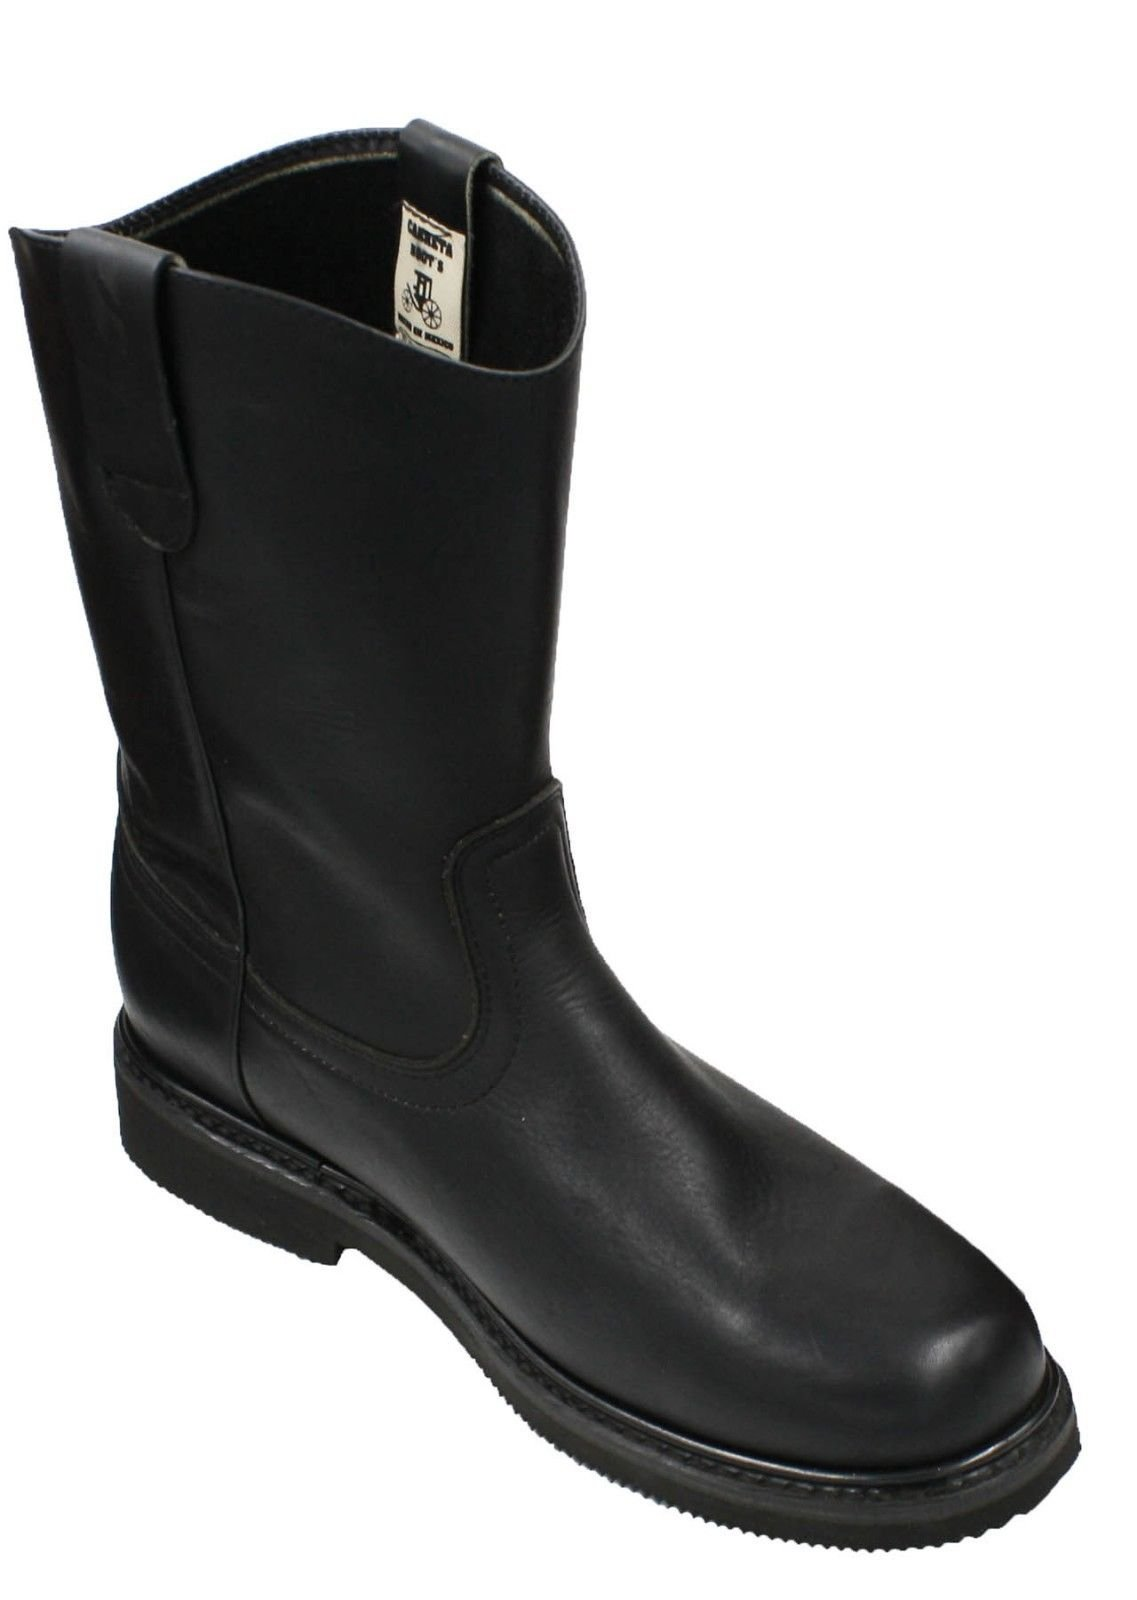 Dona Michi Men's Work Boots Pull On Leather Oil Water Slip Resistant Black 8.5 by Dona Michi (Image #3)